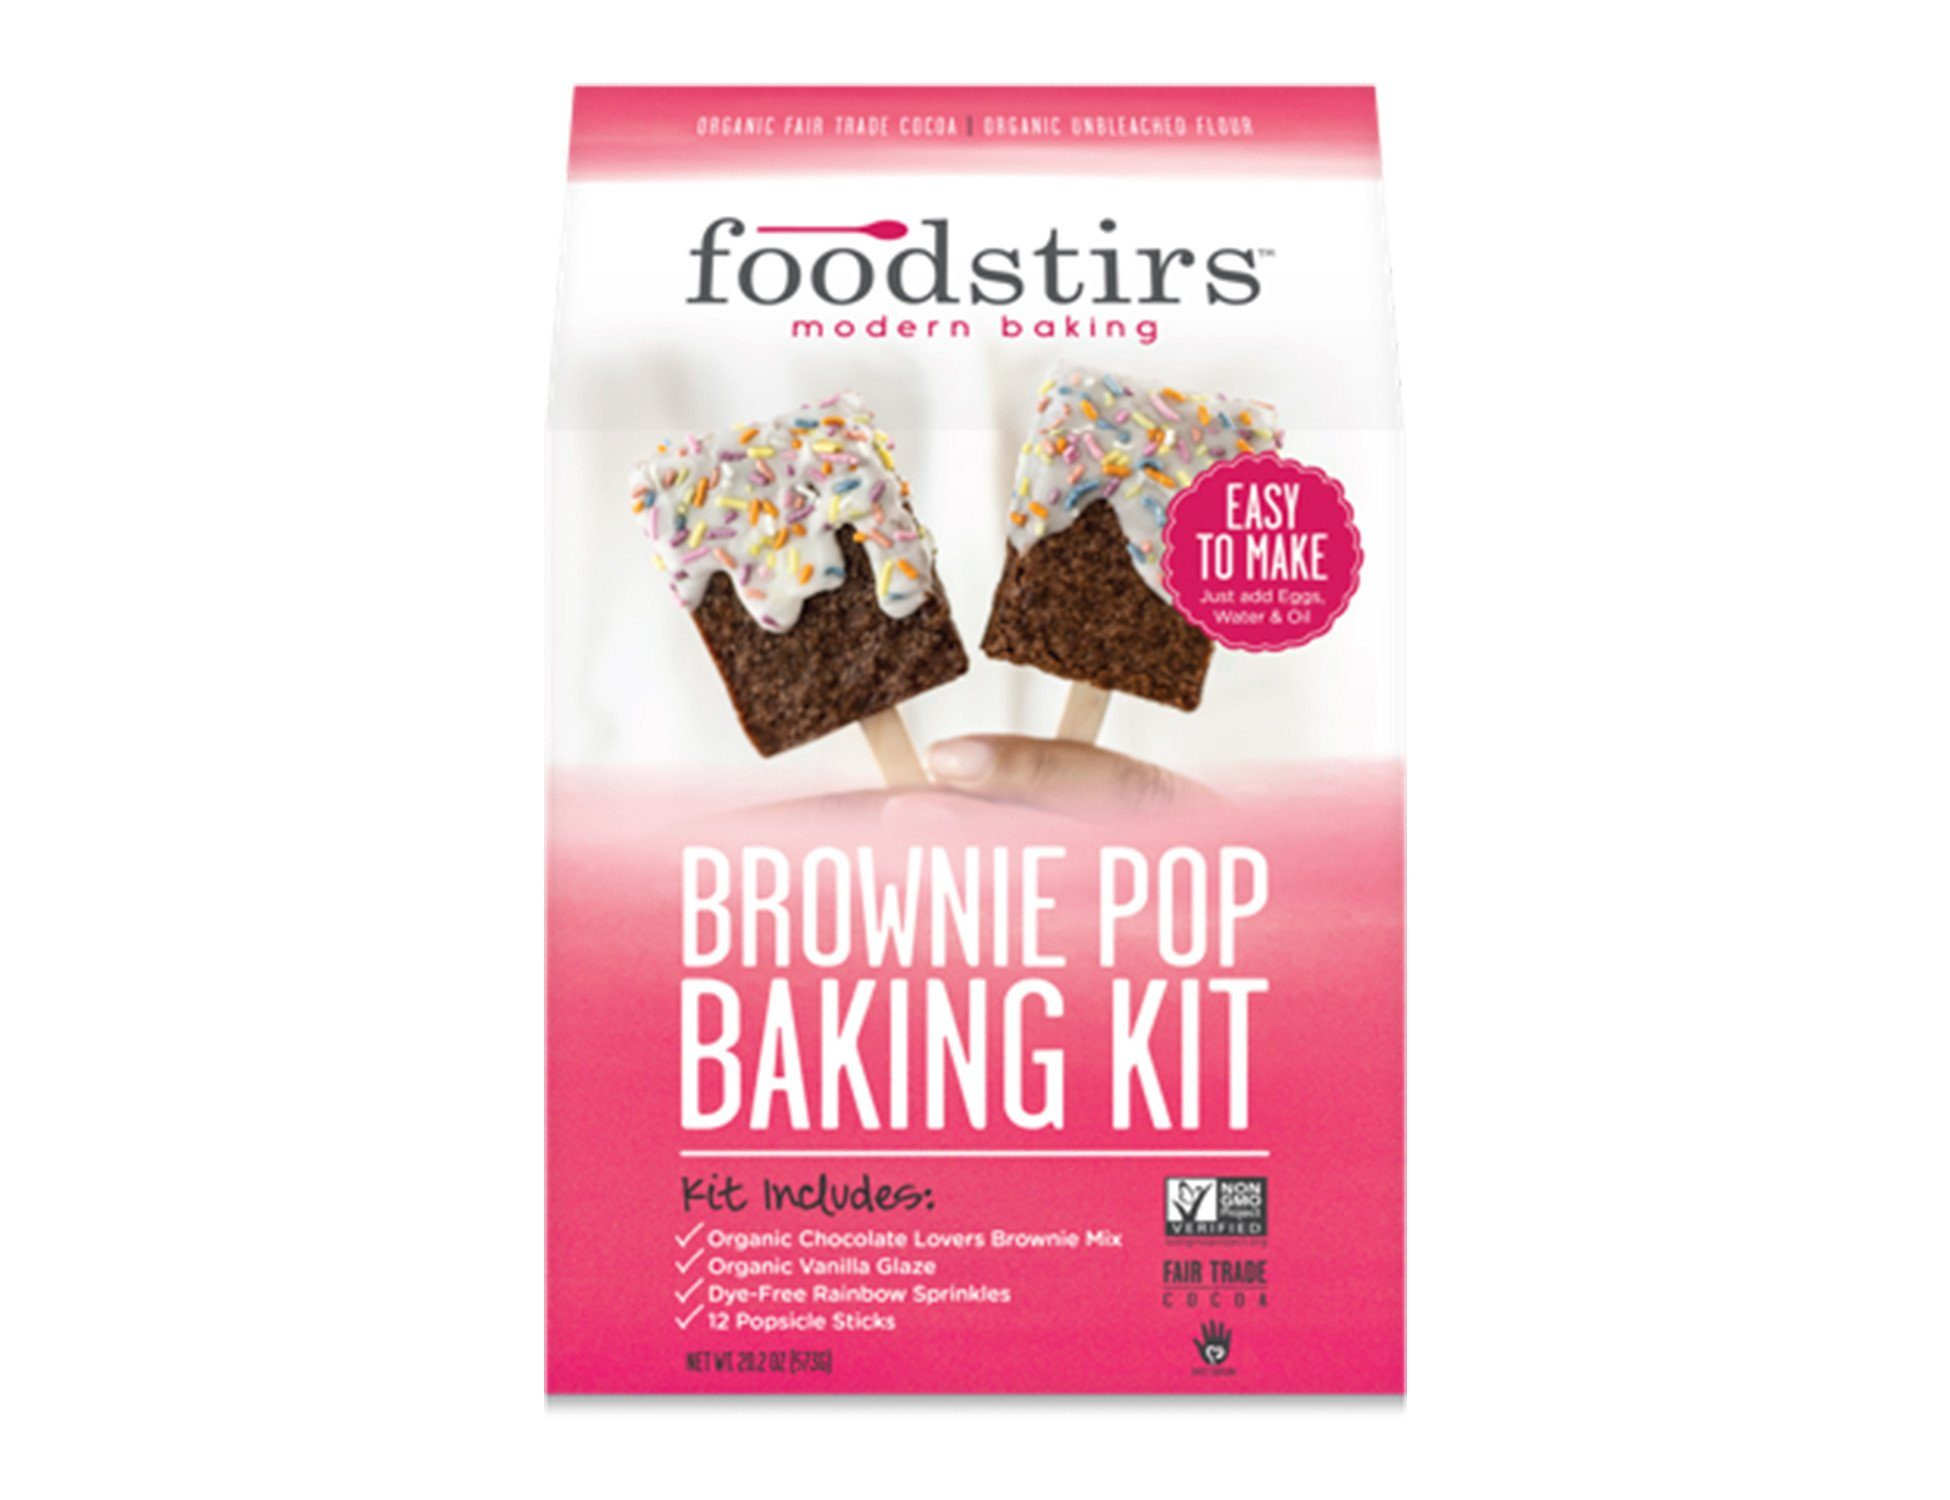 foodstirs the best organic diy baking kits subscriptions delivered brownie pops baking kit